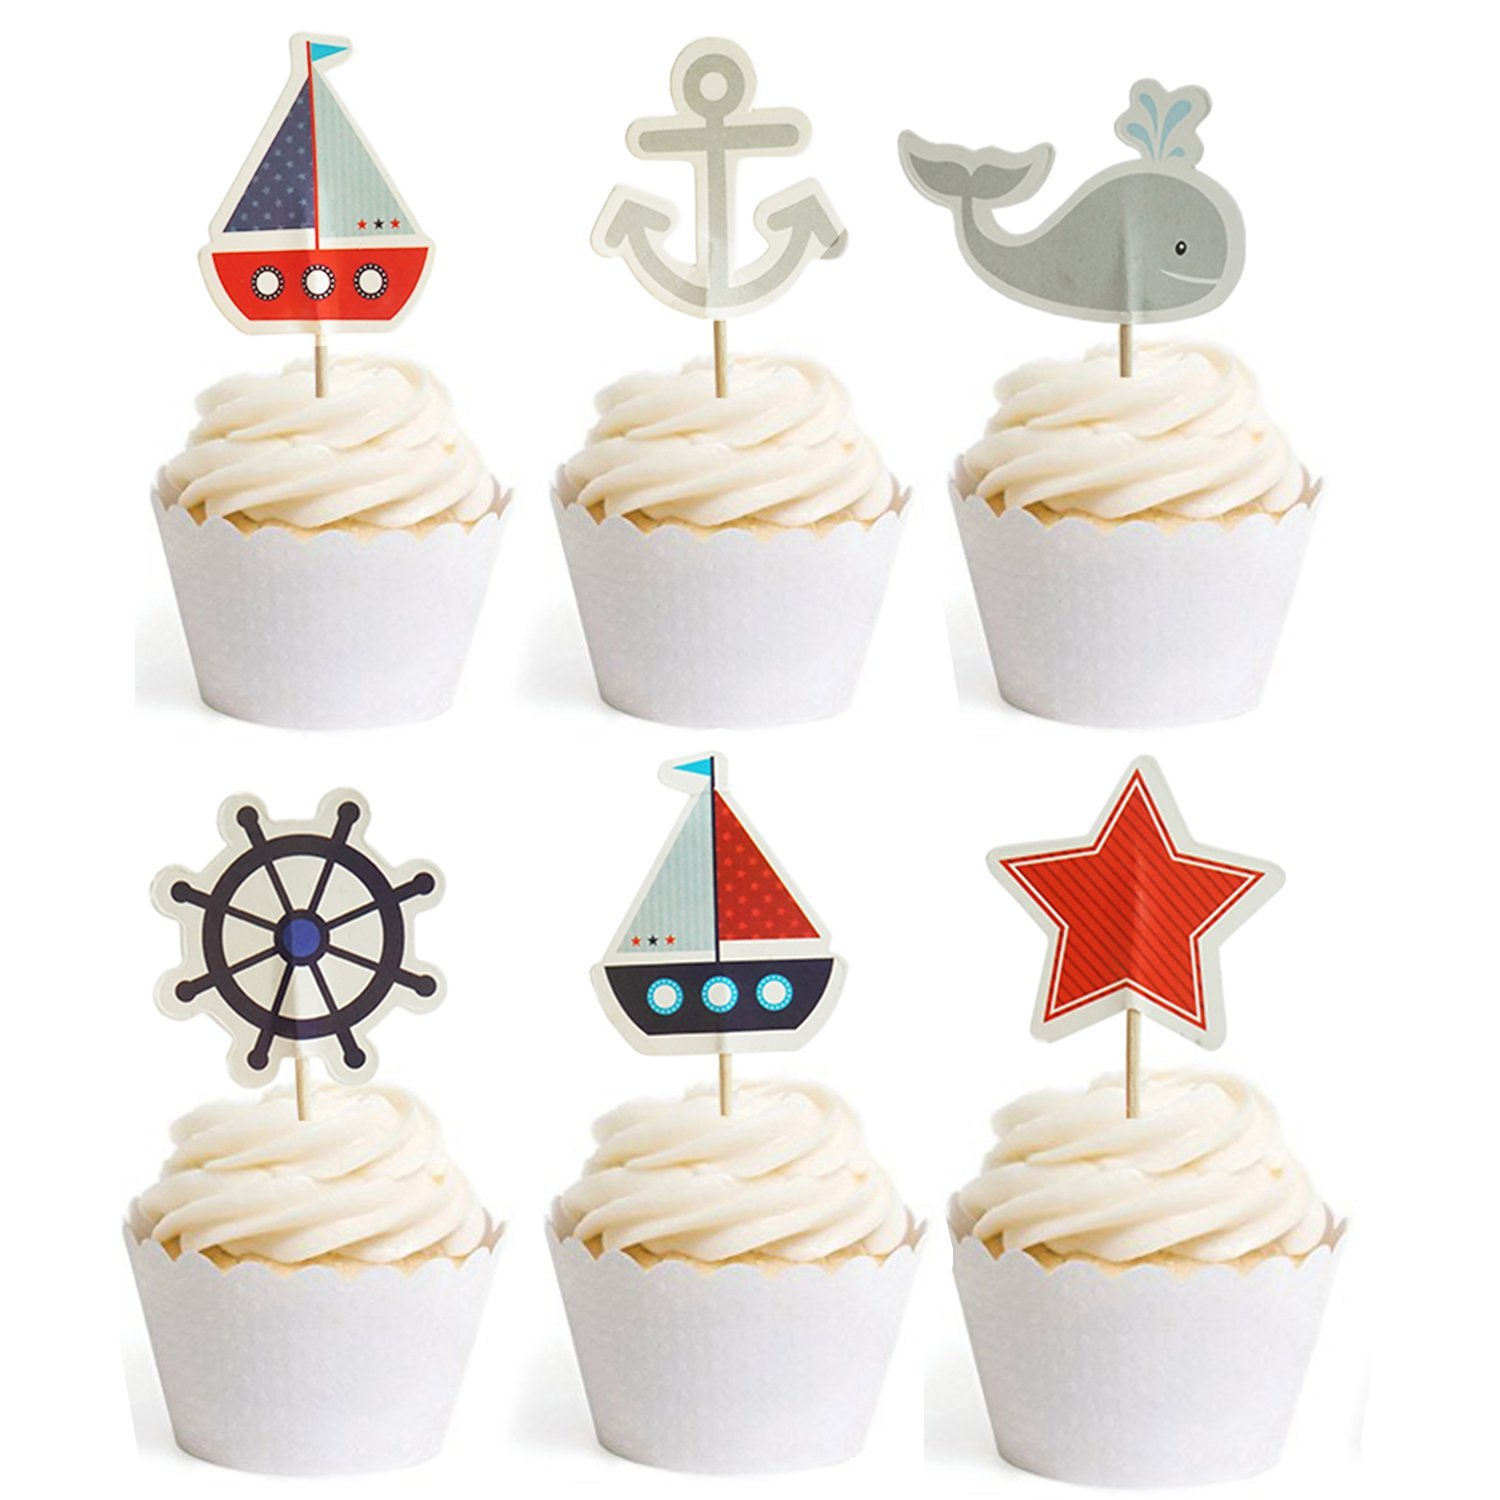 Nautical Cupcake Toppers Whale Cake Decorations For Baby Shower Wedding Birthday Party 24 Counts By GOCROWN